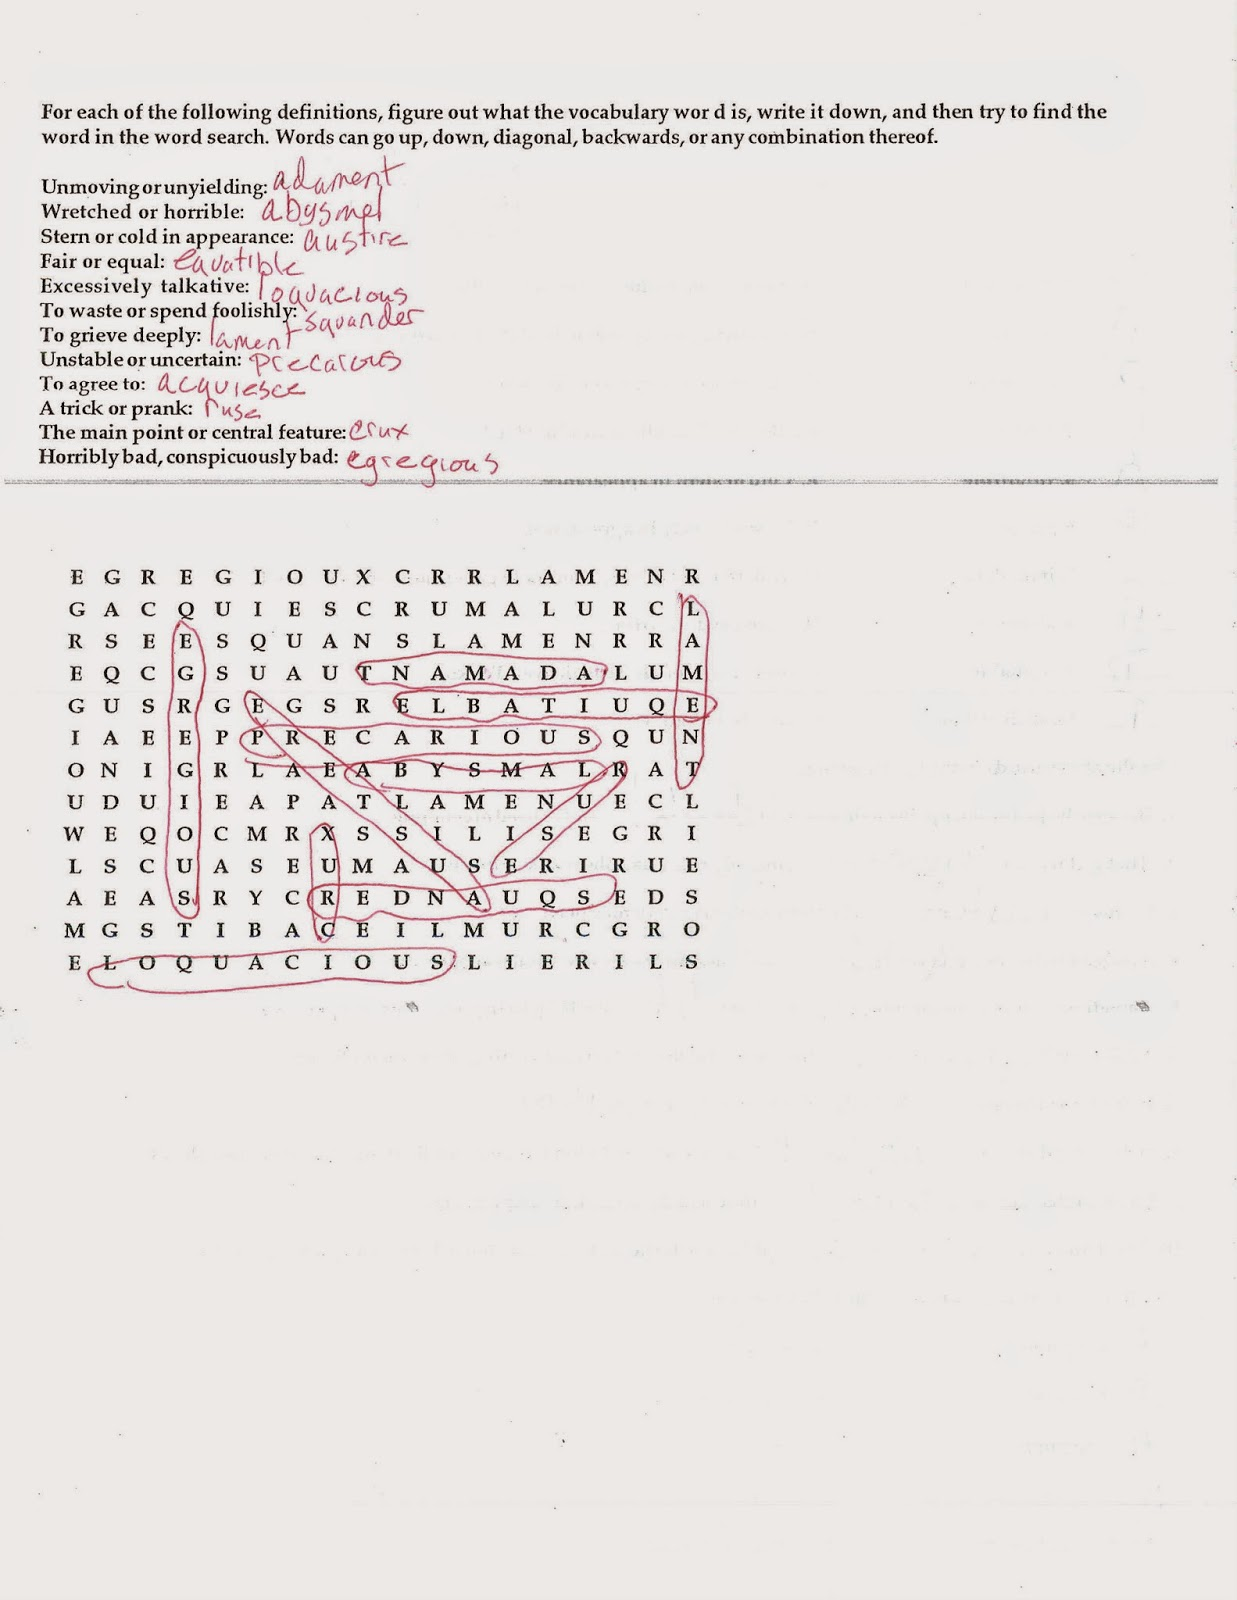 English I 10 20 14 Week 6 Practice Quiz Answer Key Parts 1 And 2